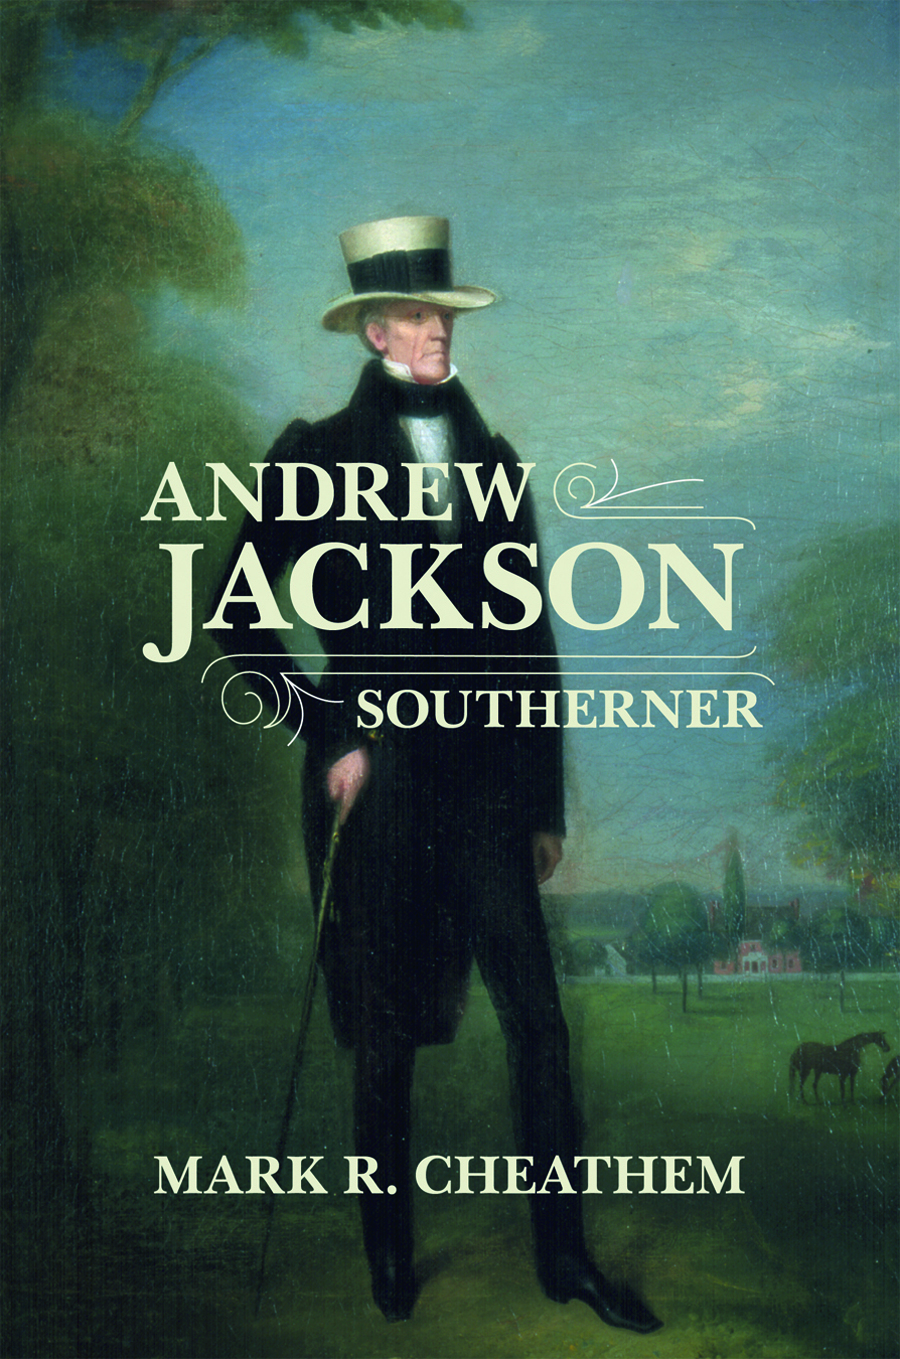 Historian, Mark Cheathem, will be at the Museum Center at 5ive Points on Thursday, April 3 at 6:00 p.m. to discuss his new book, Andrew Jackson,  Southerner. This event is free for Museum members and regular admission applies for non-members.